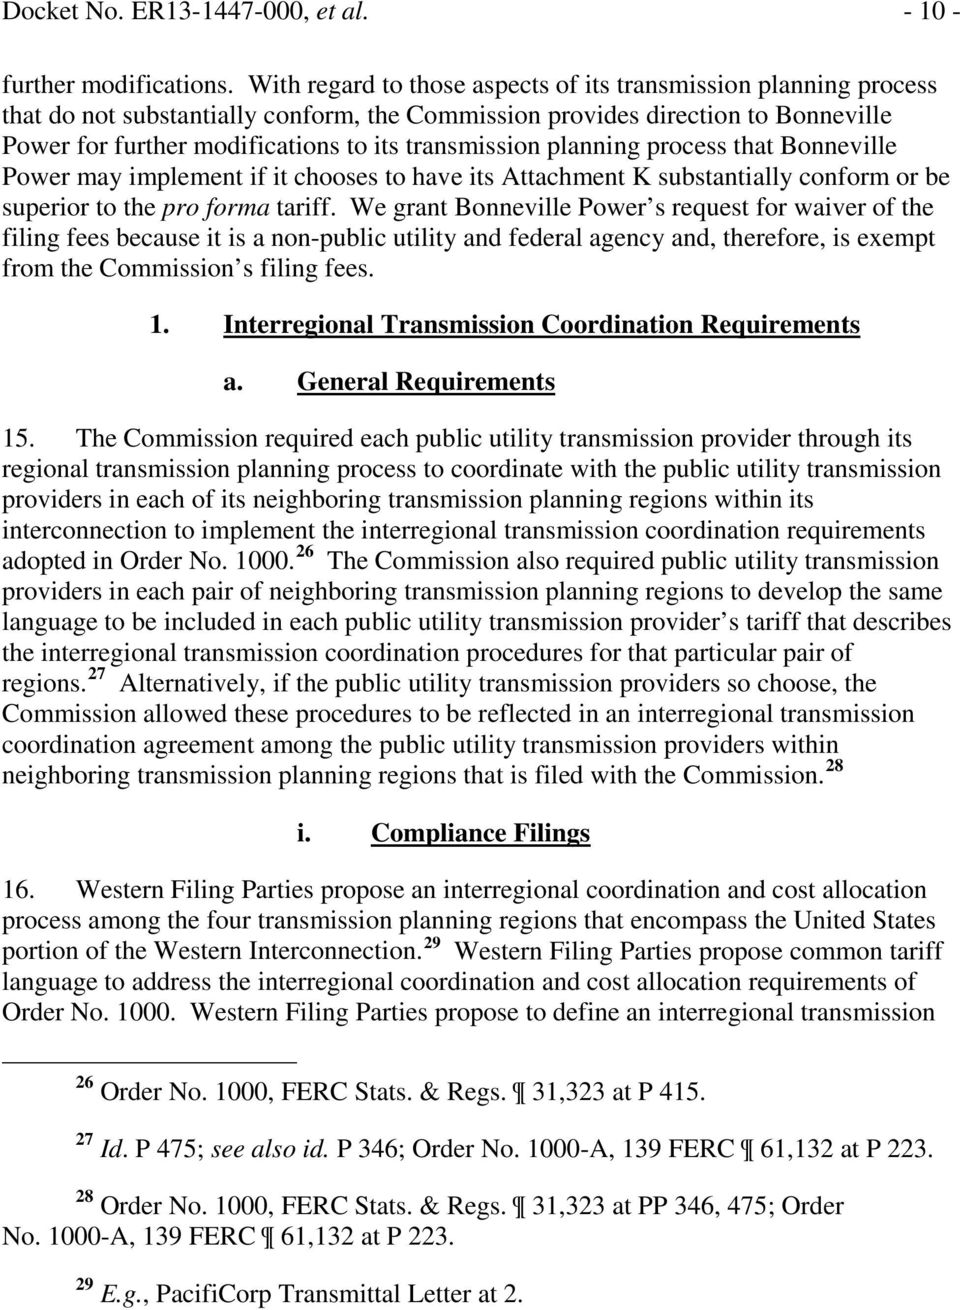 transmission planning process that Bonneville Power may implement if it chooses to have its Attachment K substantially conform or be superior to the pro forma tariff.